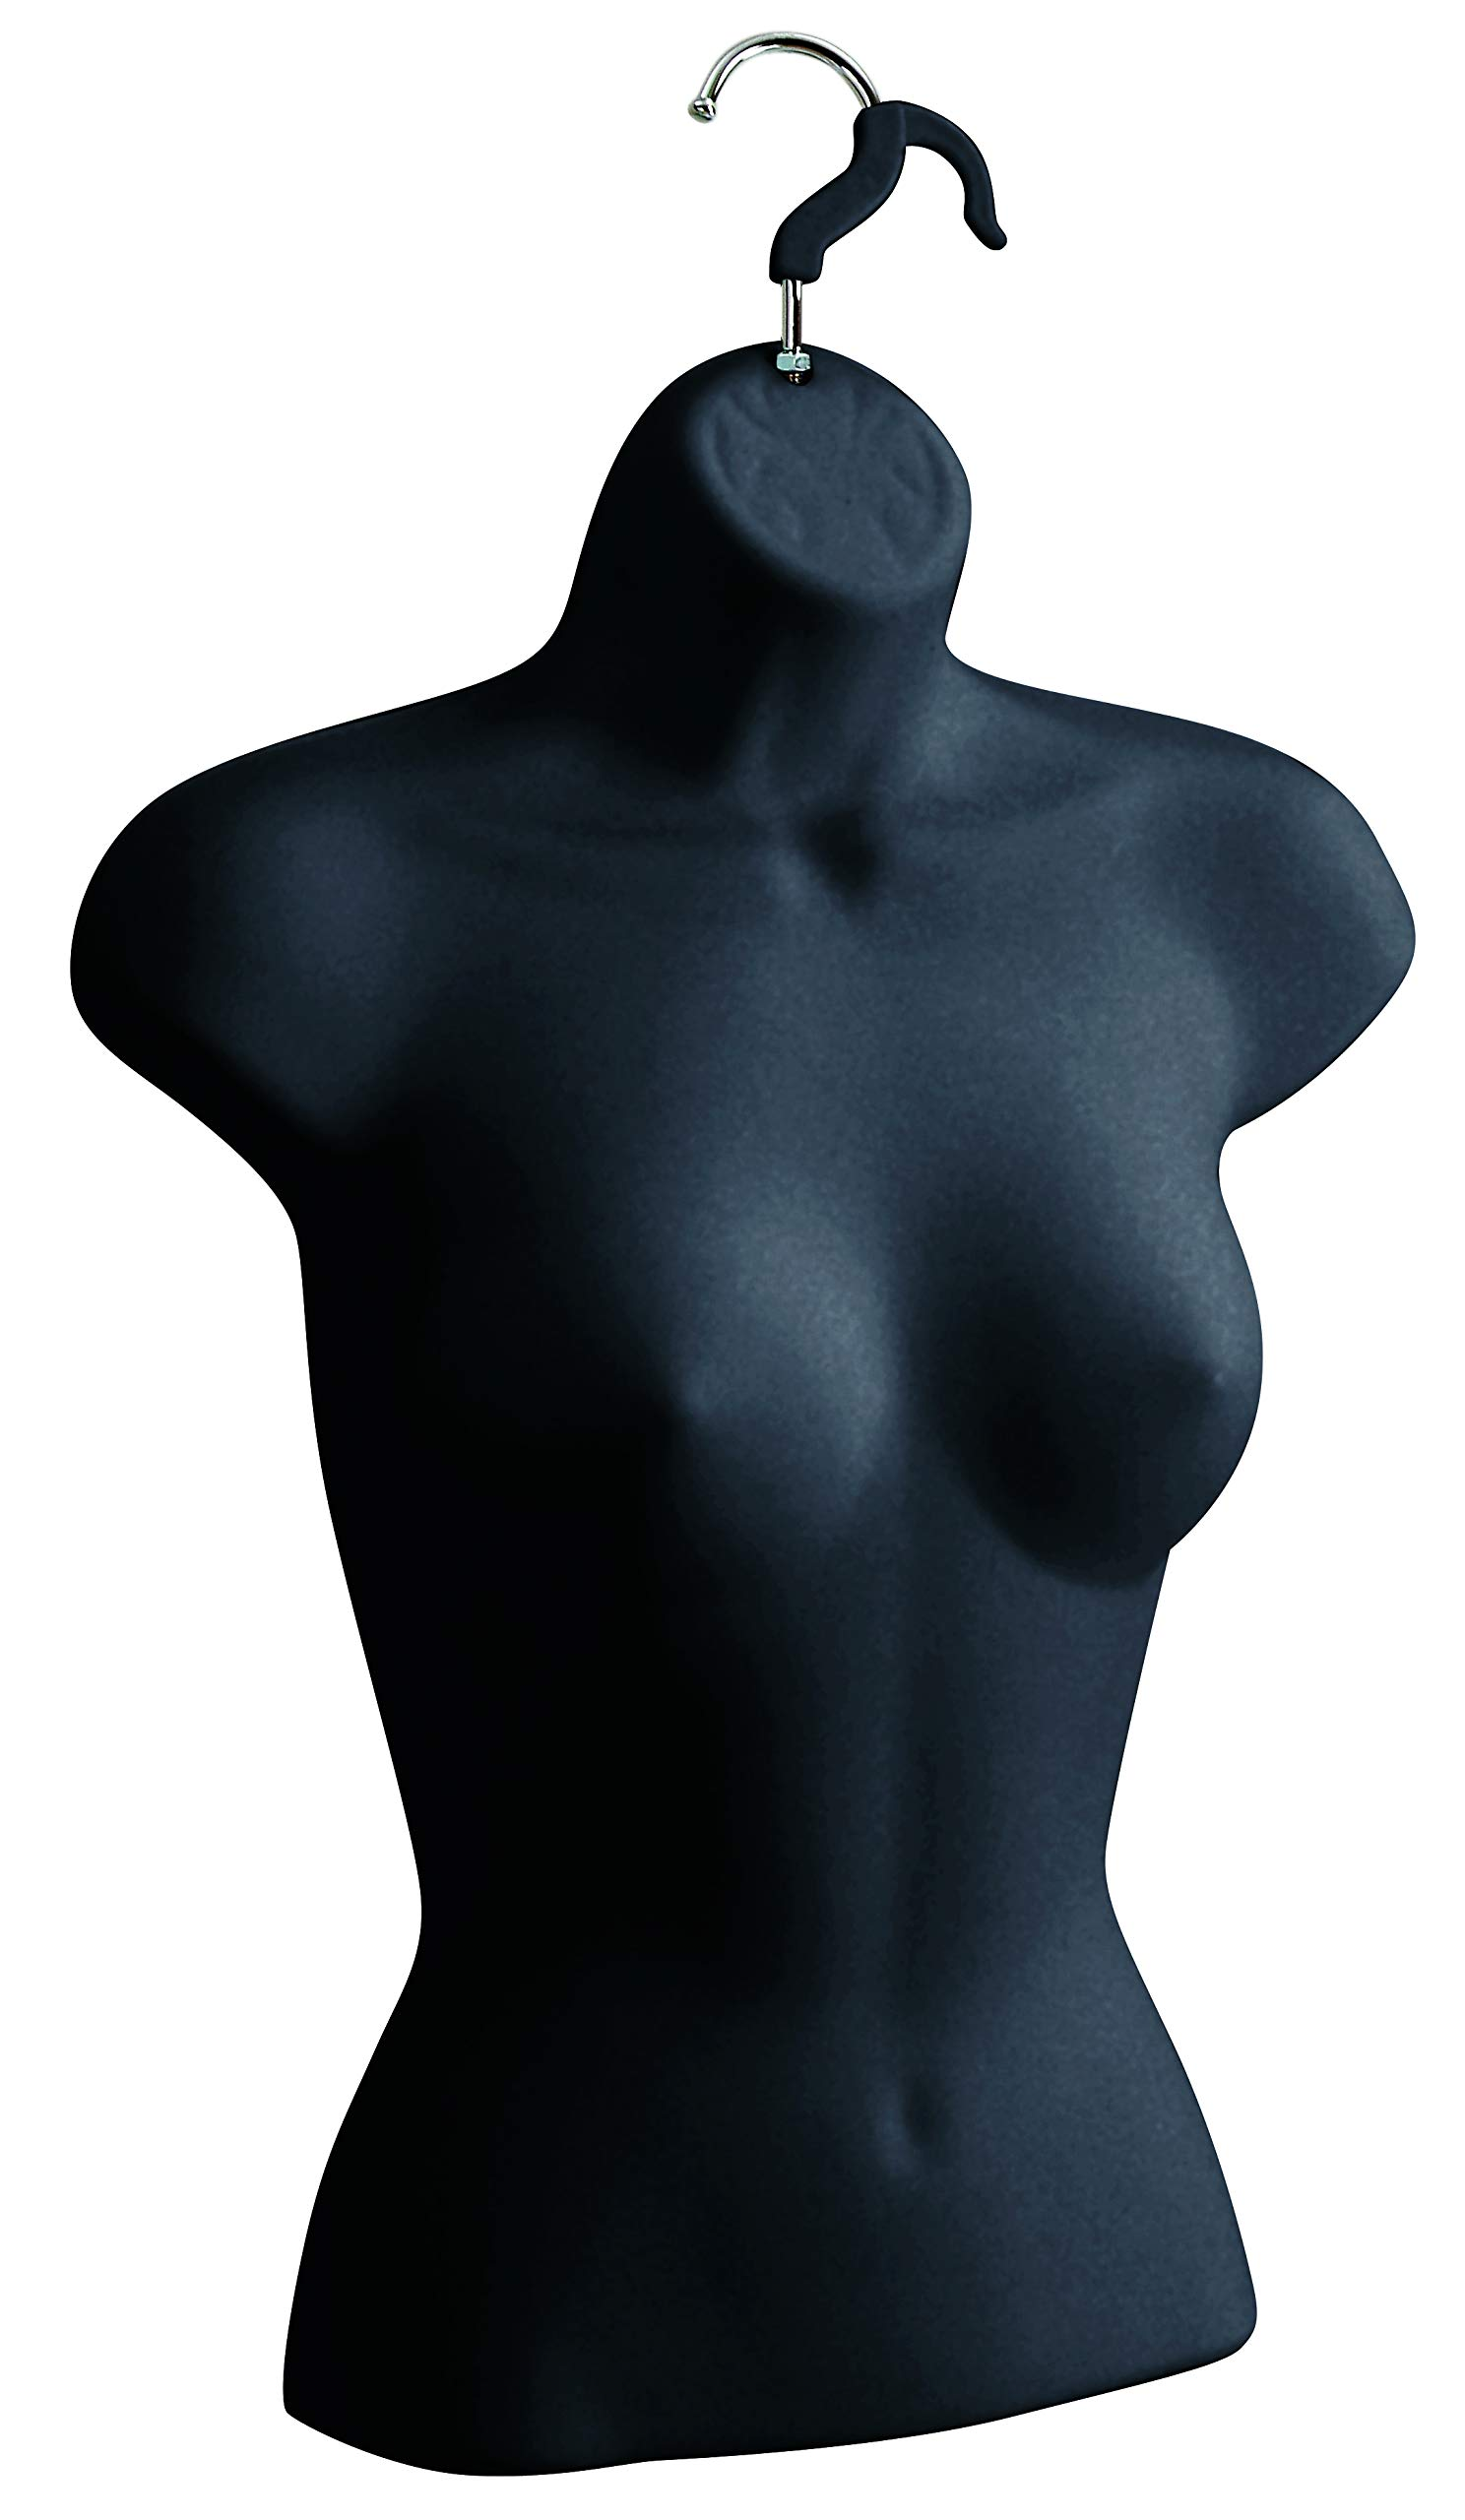 Female Molded Black Shirt Form - Fits Women's Sizes 5-10